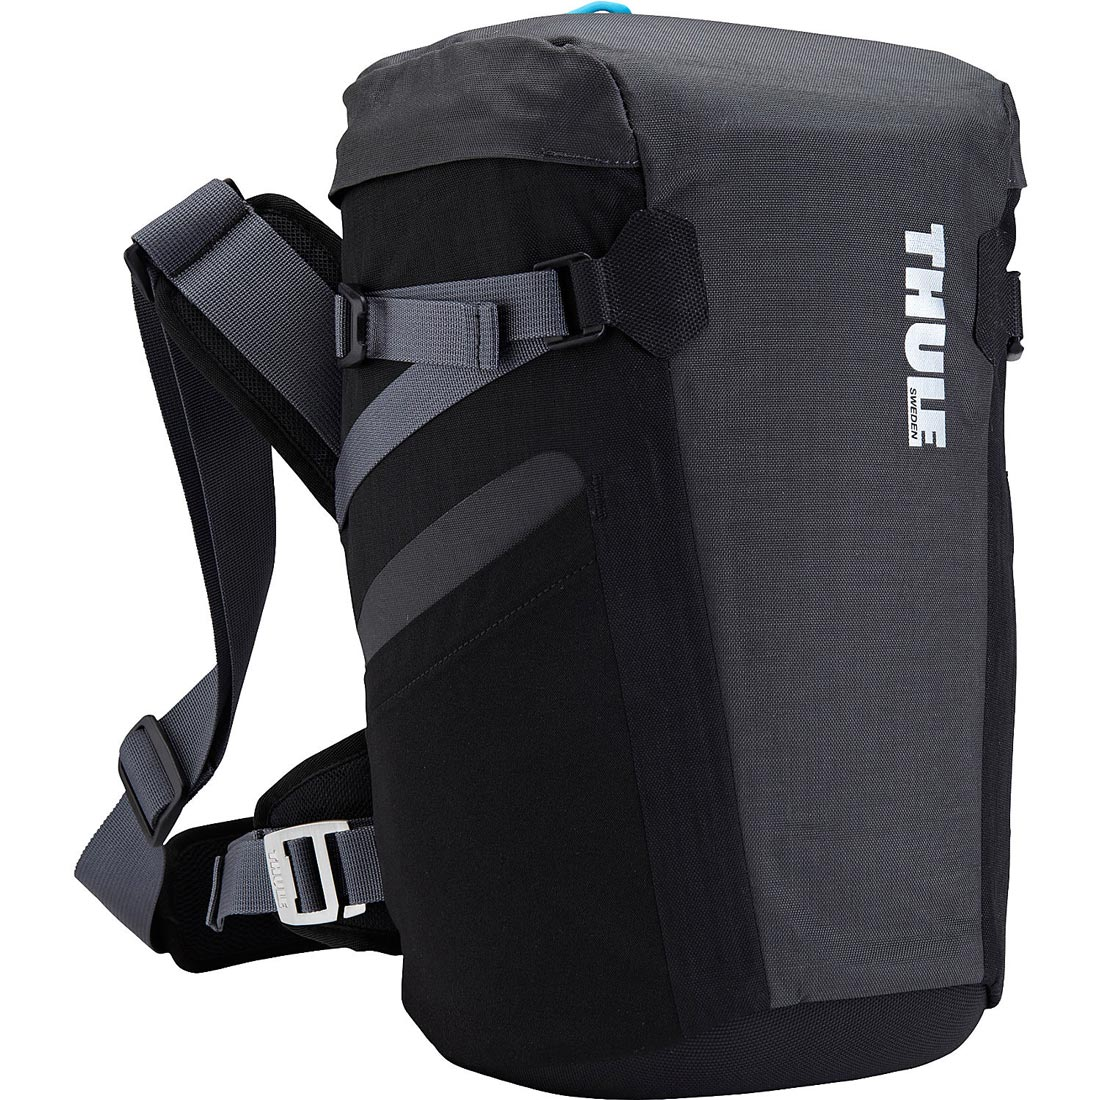 Le sac photo Thule Perspektiv Large Toploader.